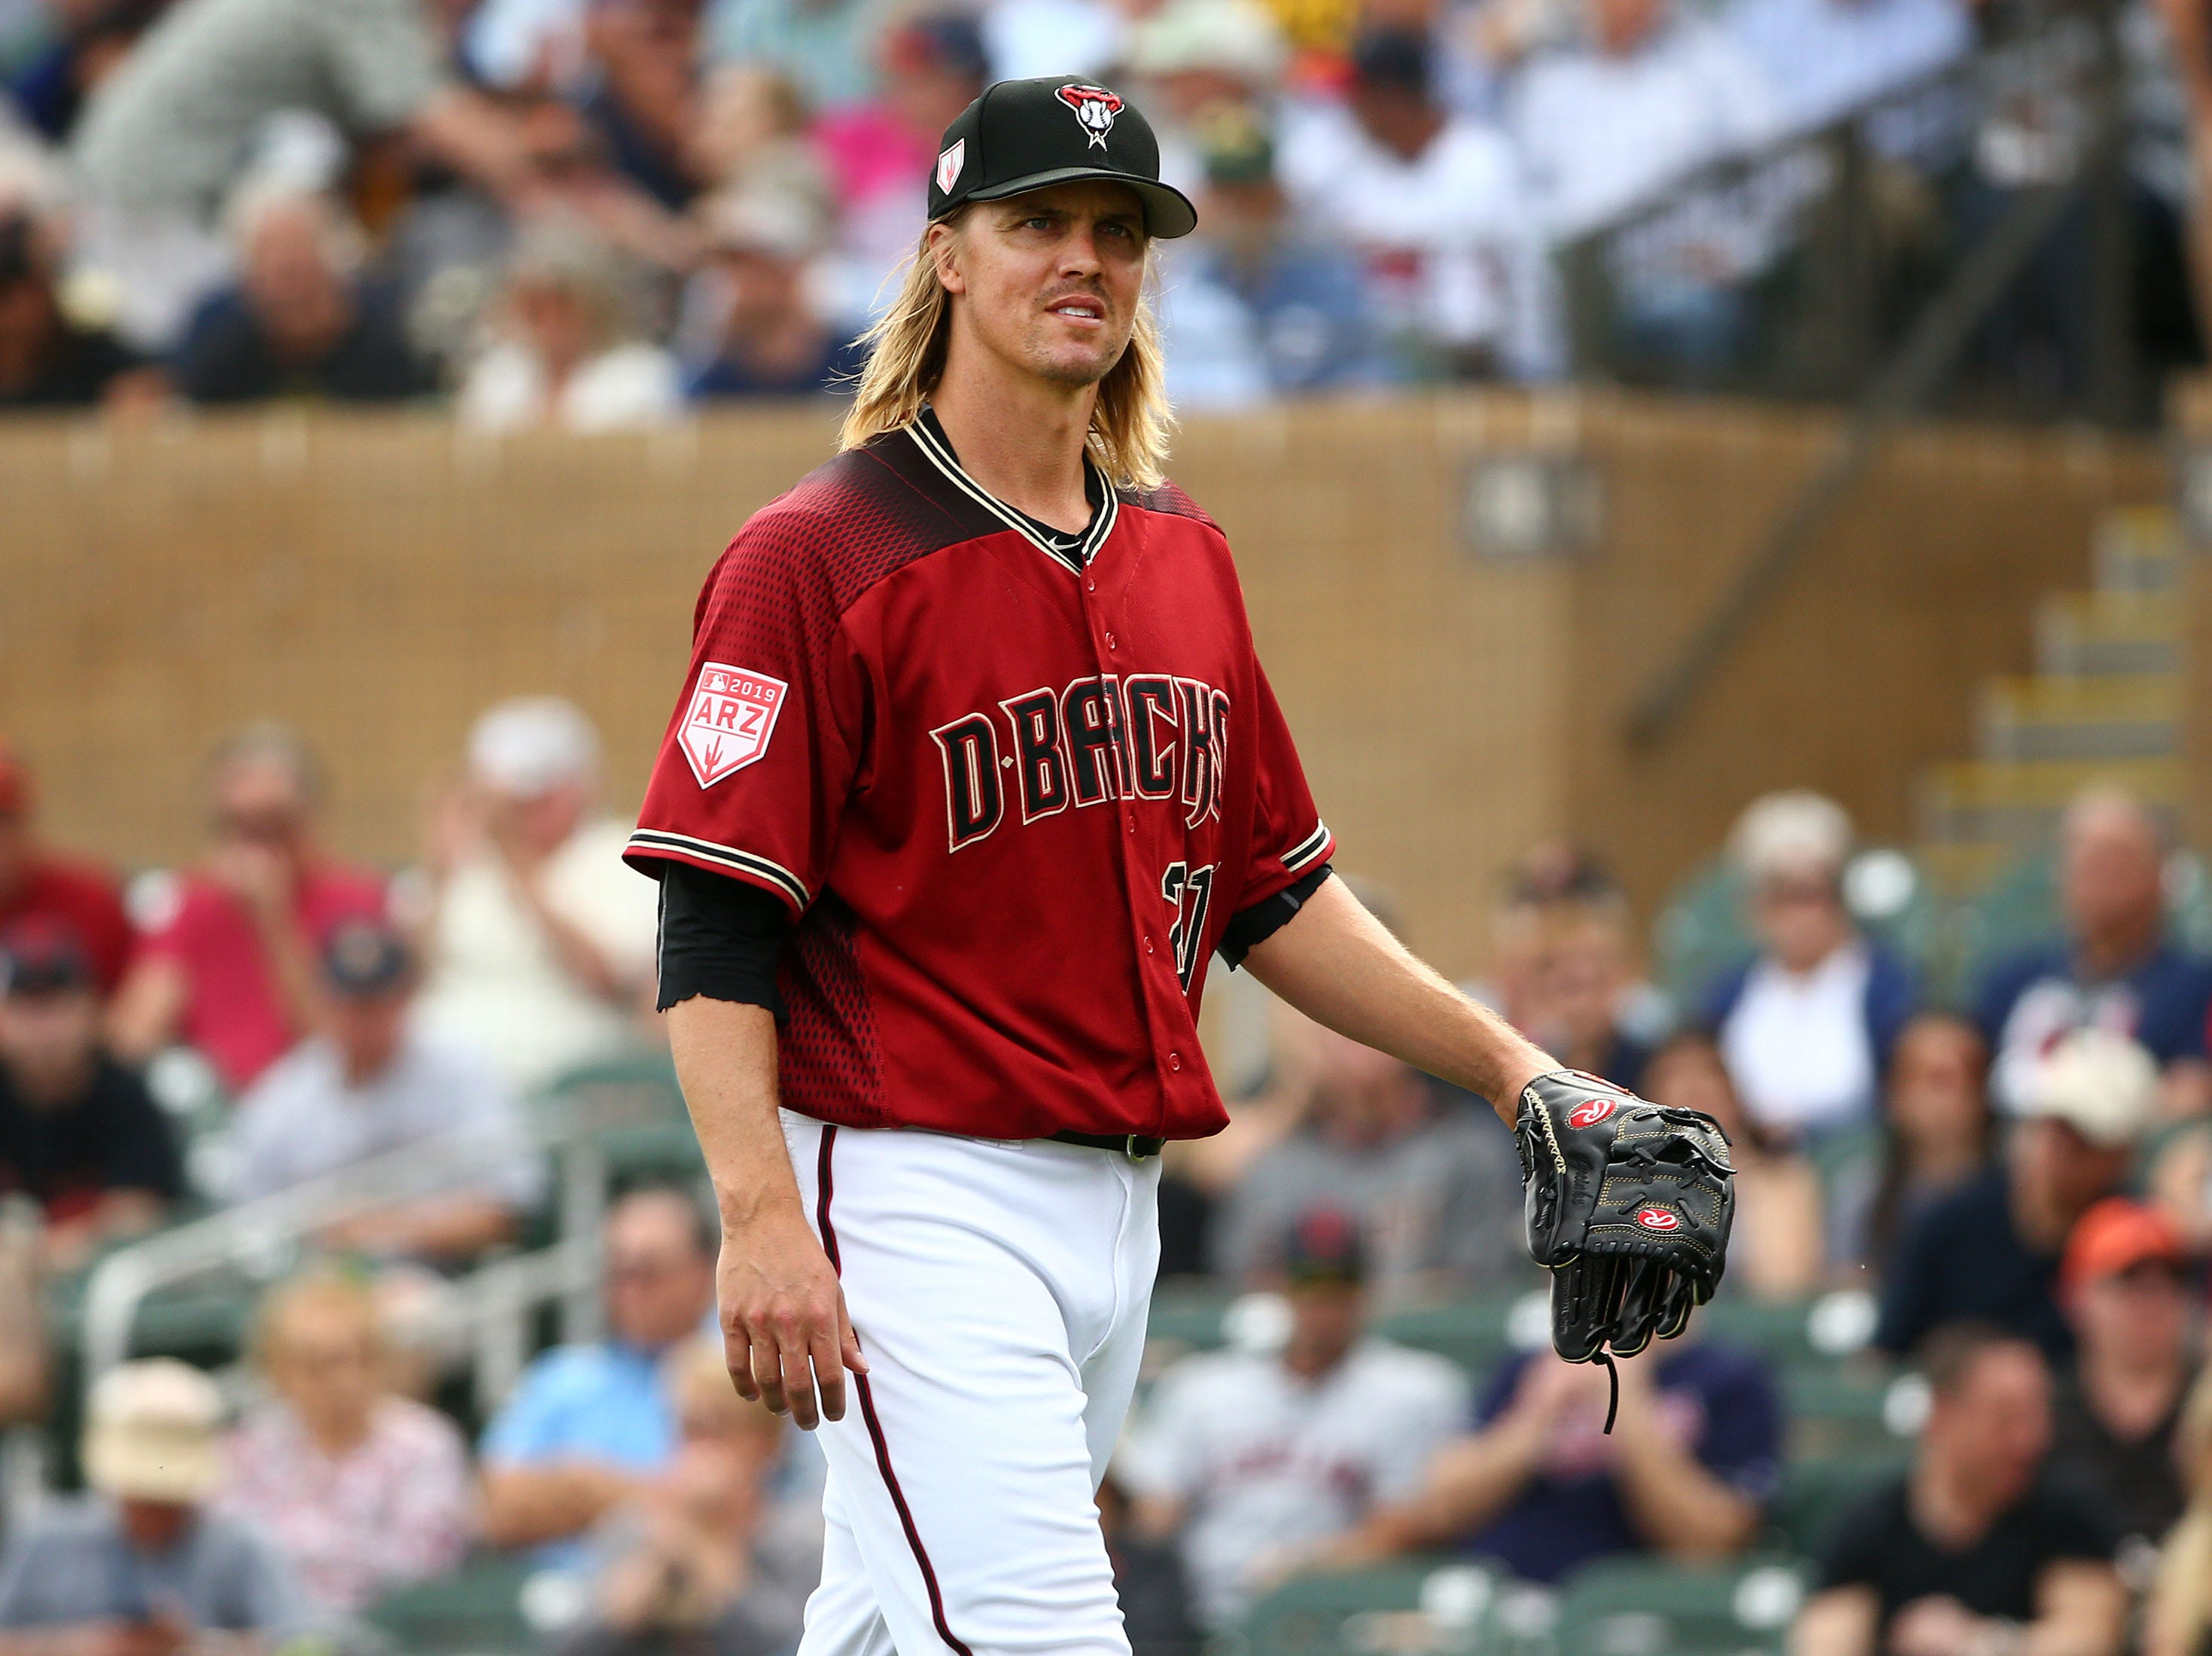 Arizona Diamondbacks pitcher Zack Greinke retires the Cleveland Indians in the first inning during a spring training game on Mar. 7, 2019 at Salt River Fields in Scottsdale, Ariz.